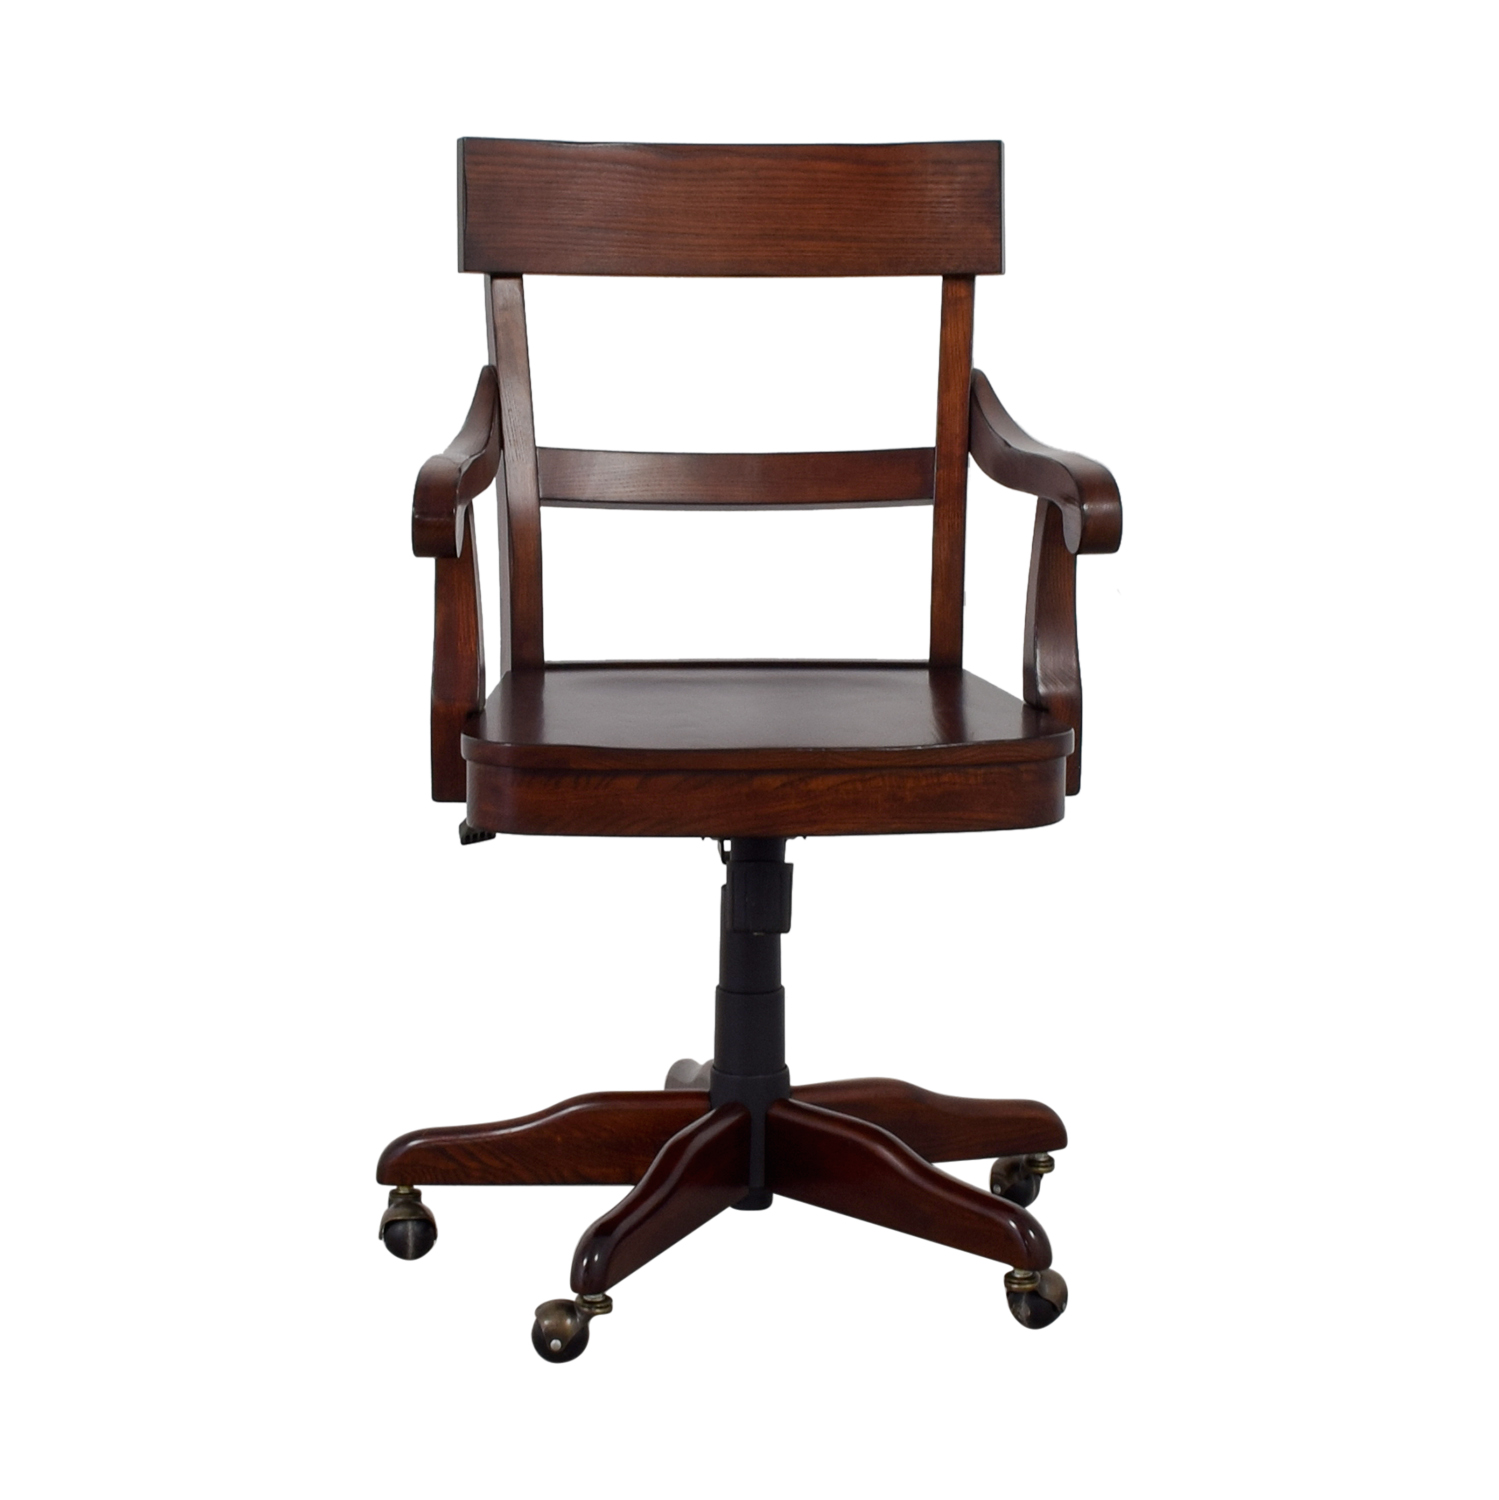 swivel chair pottery barn chairs for vanity tables 55 off wood desk